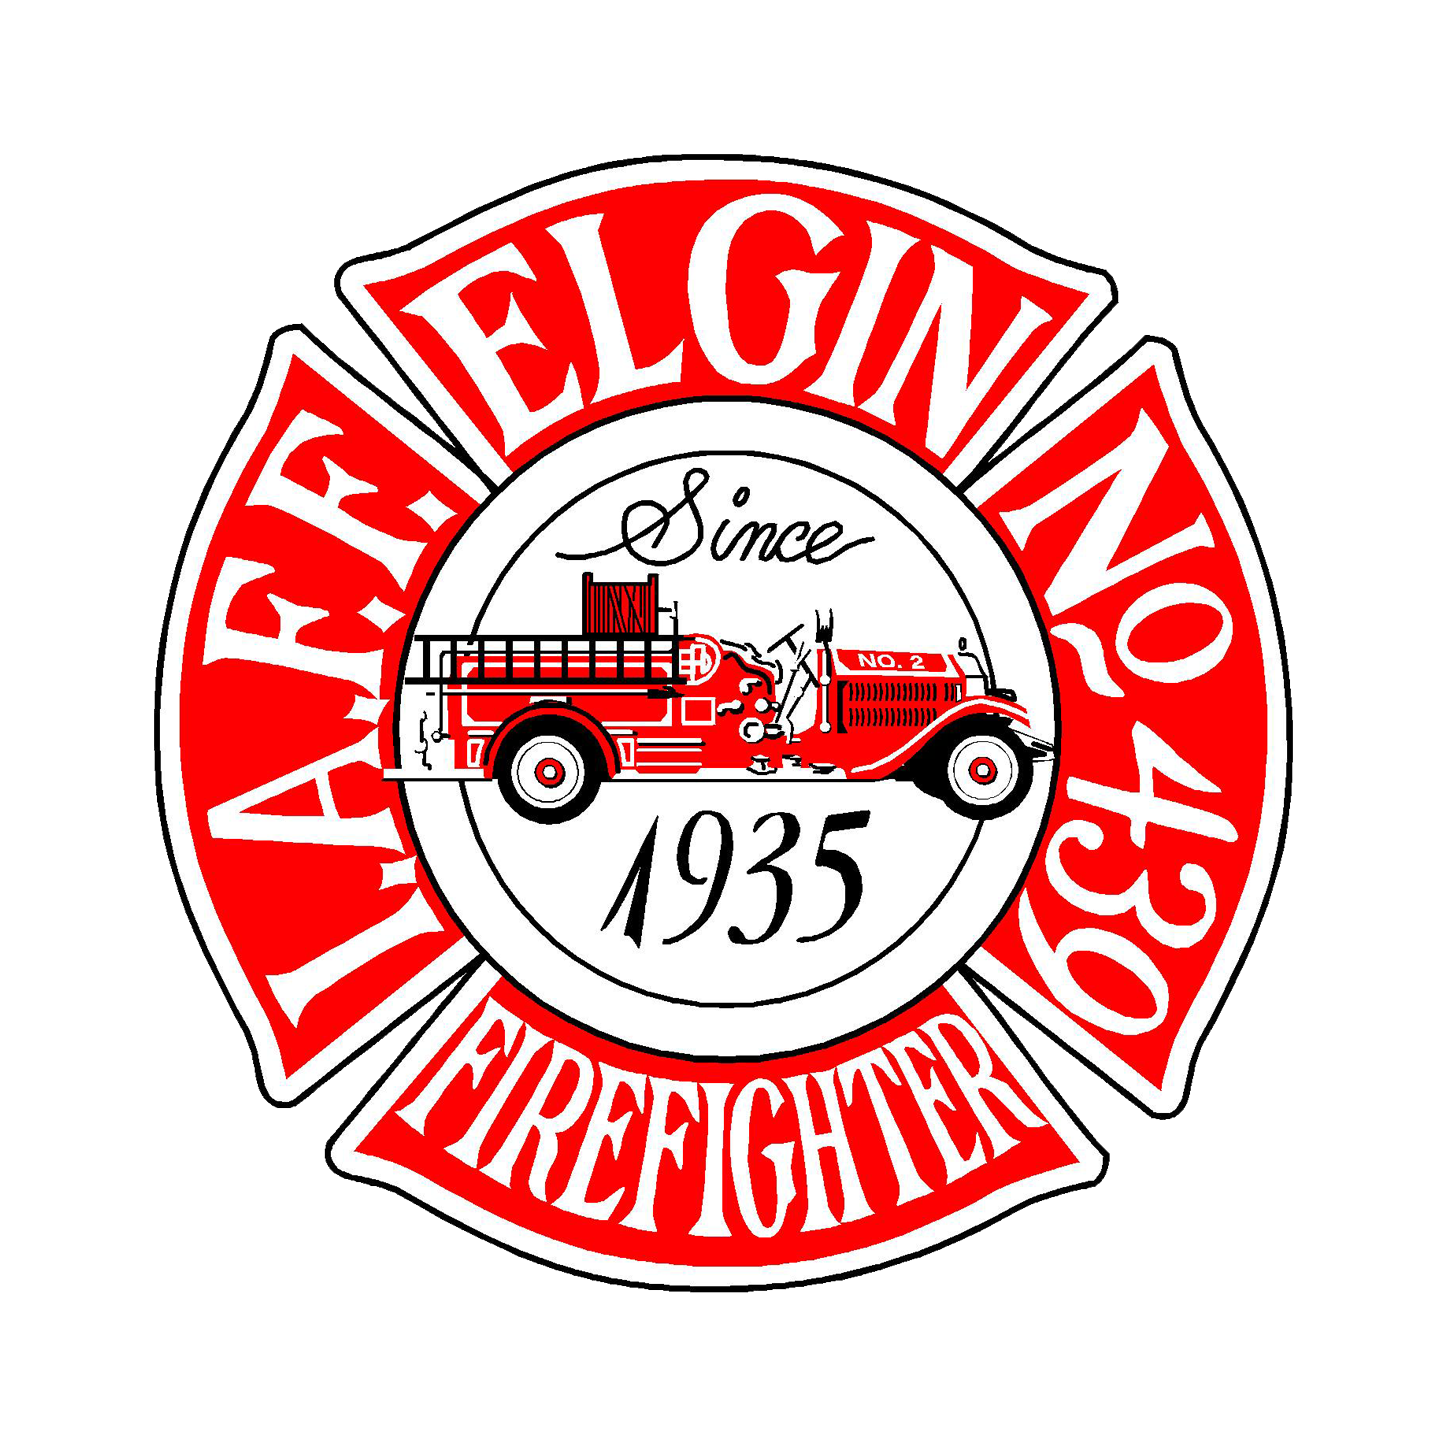 Elgin Association of Firefighters